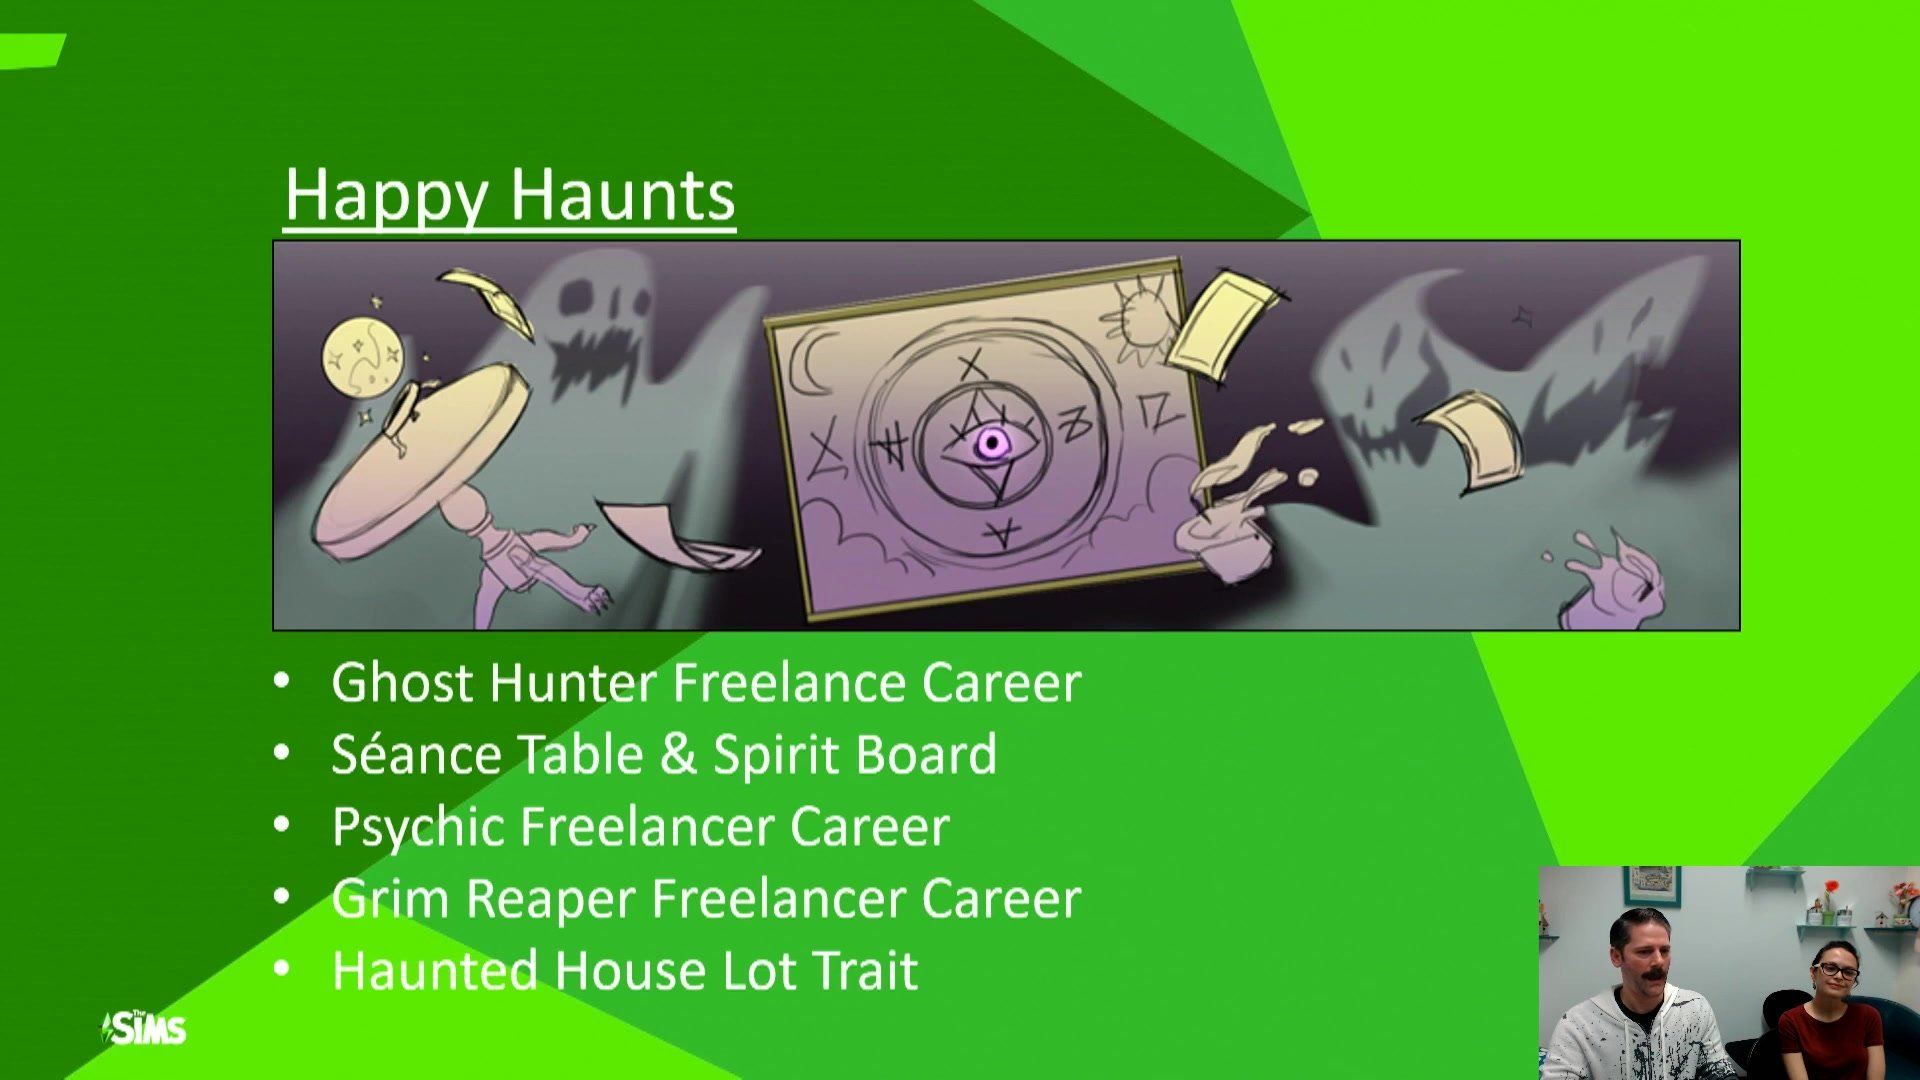 Sims 4 Happy Haunts Possible Features